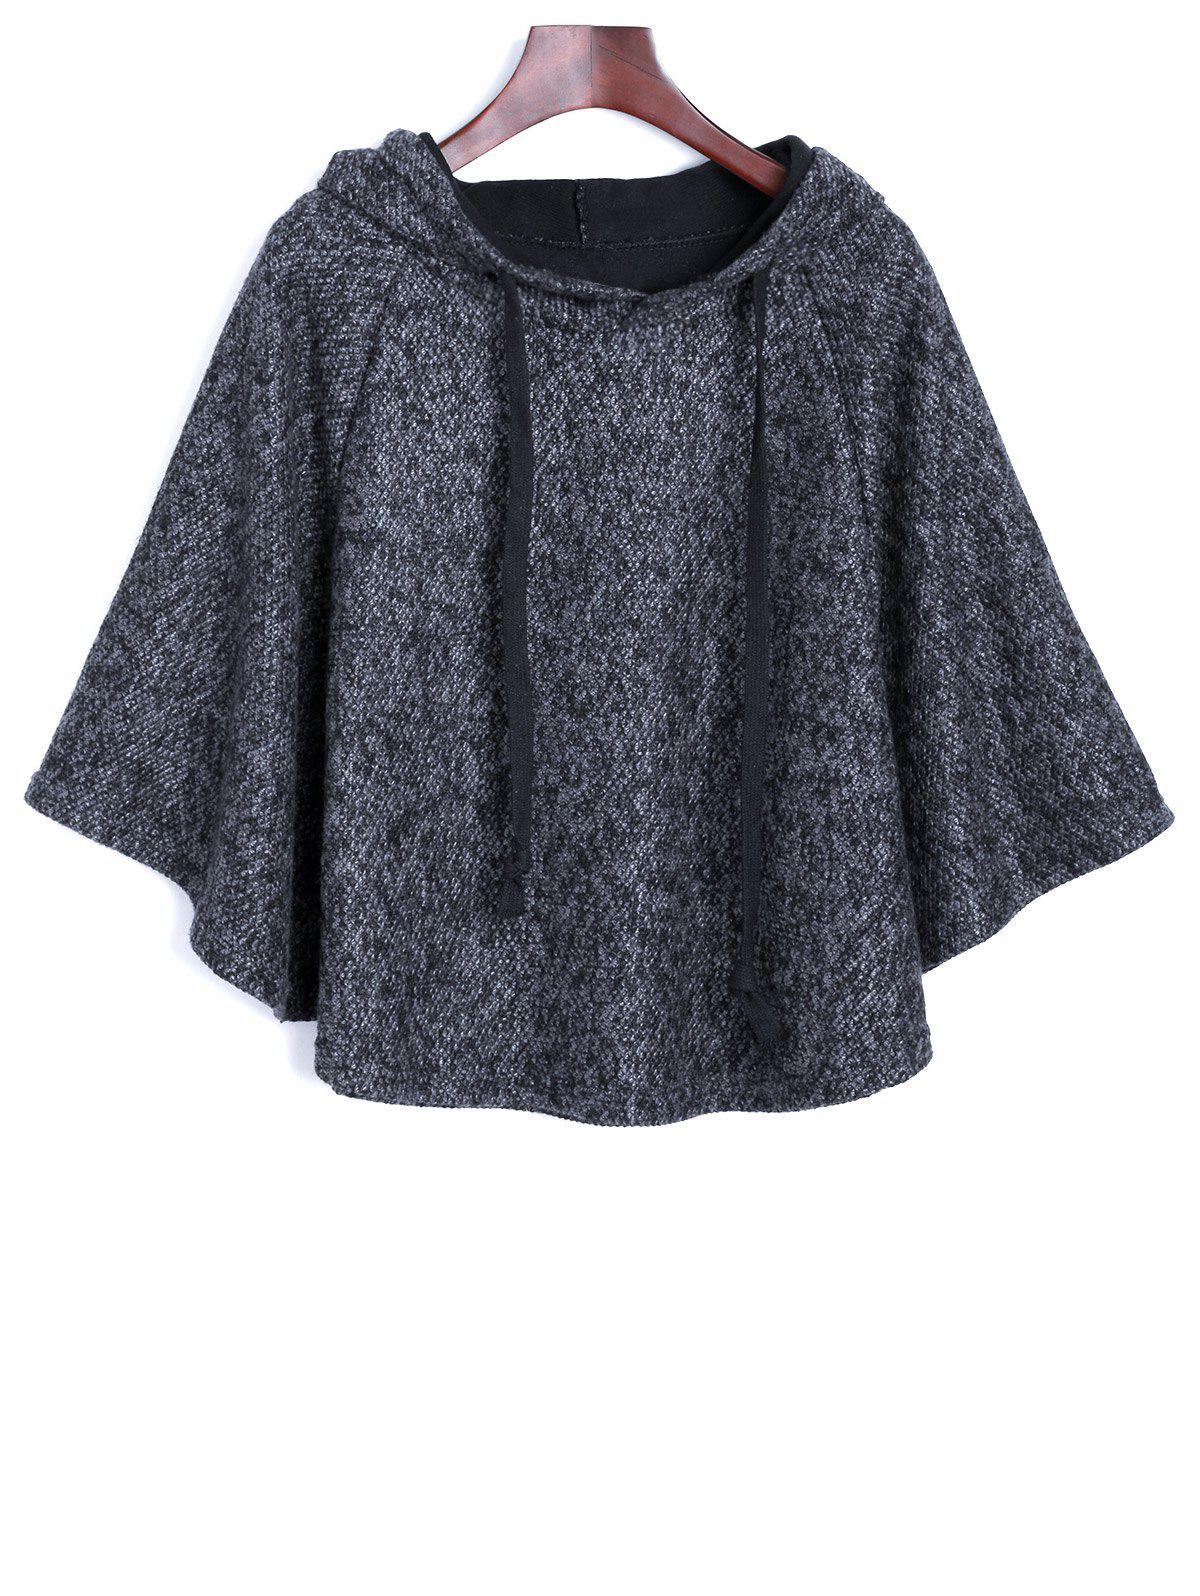 Heather Hooded Cape Poncho - Bleu gris ONE SIZE